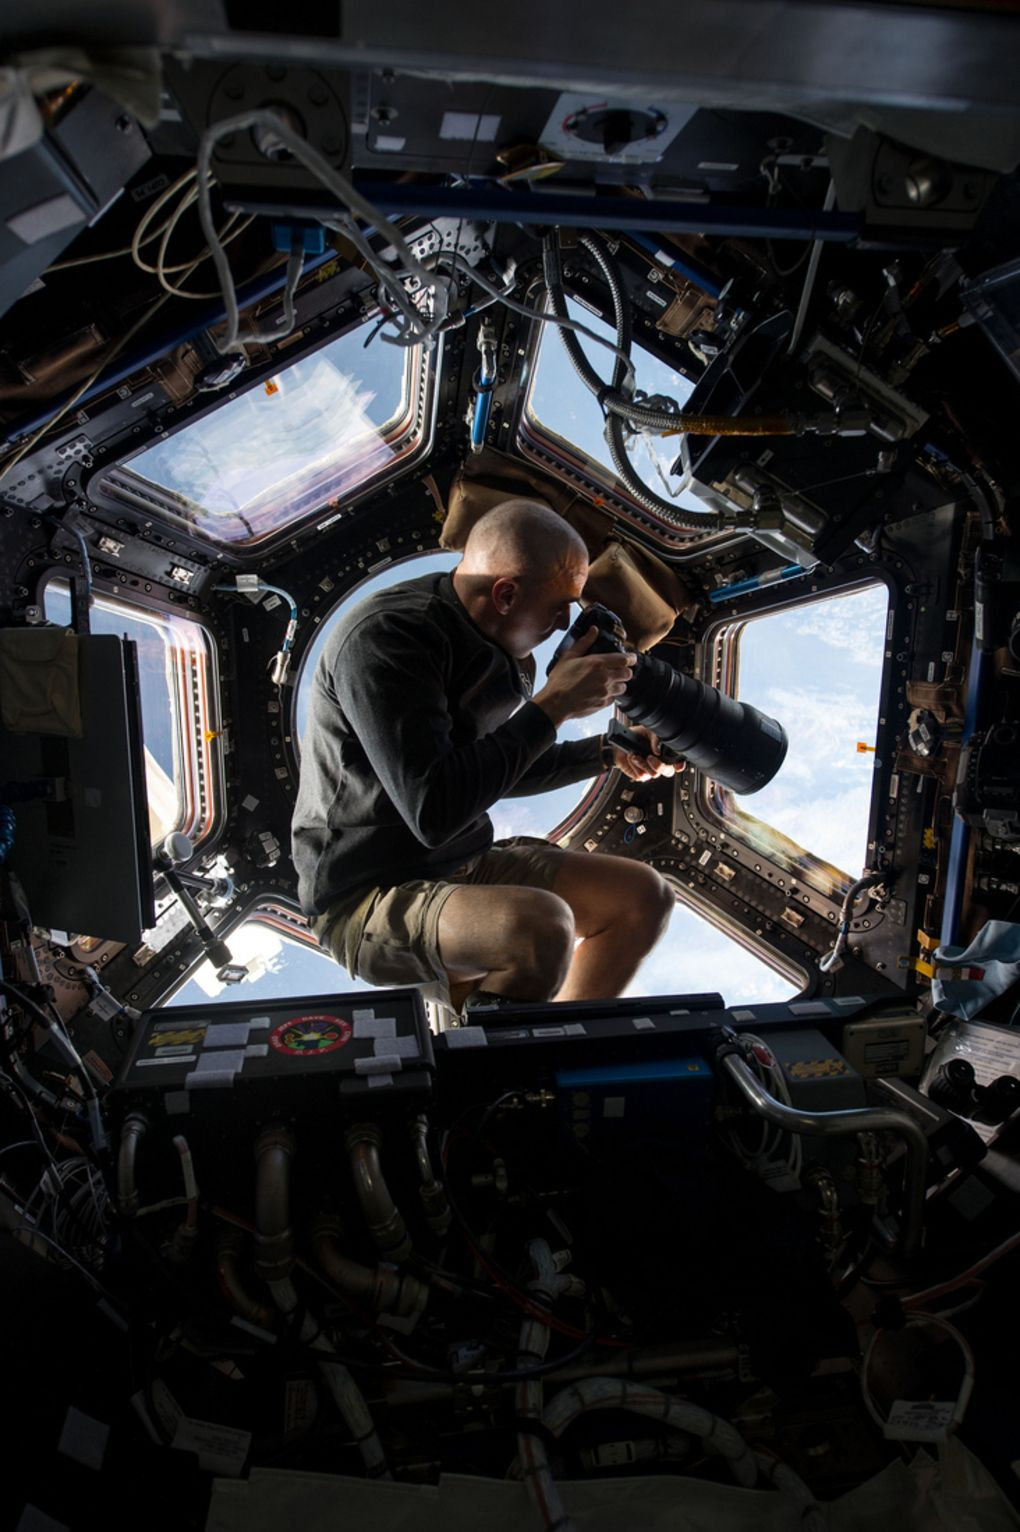 NASA releases 'Gravity'inspired photo set ahead of the